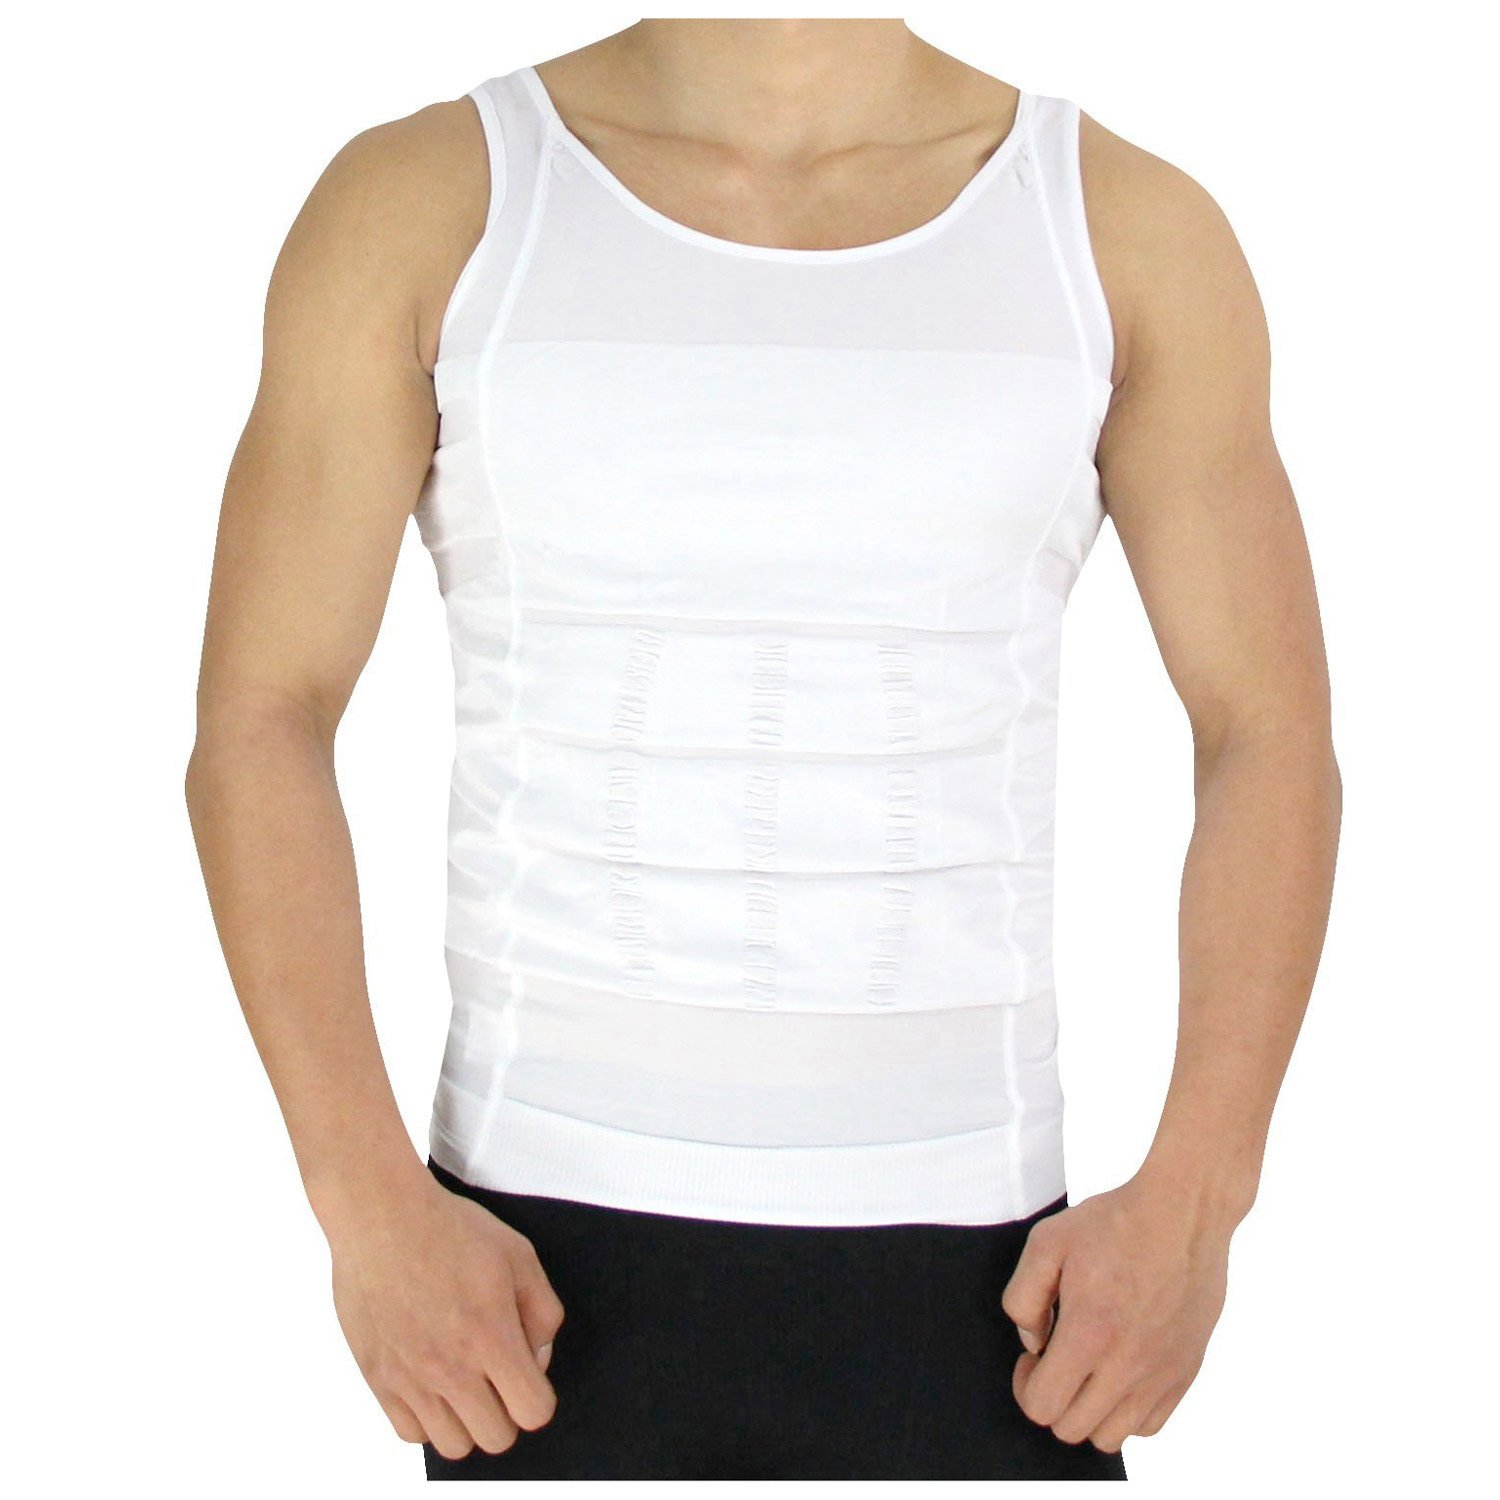 PU Health Slimming Tank Top Compression Shirt, Body Shaper Workout Tops Training Undershirts, 0.9 Pound by PU Health